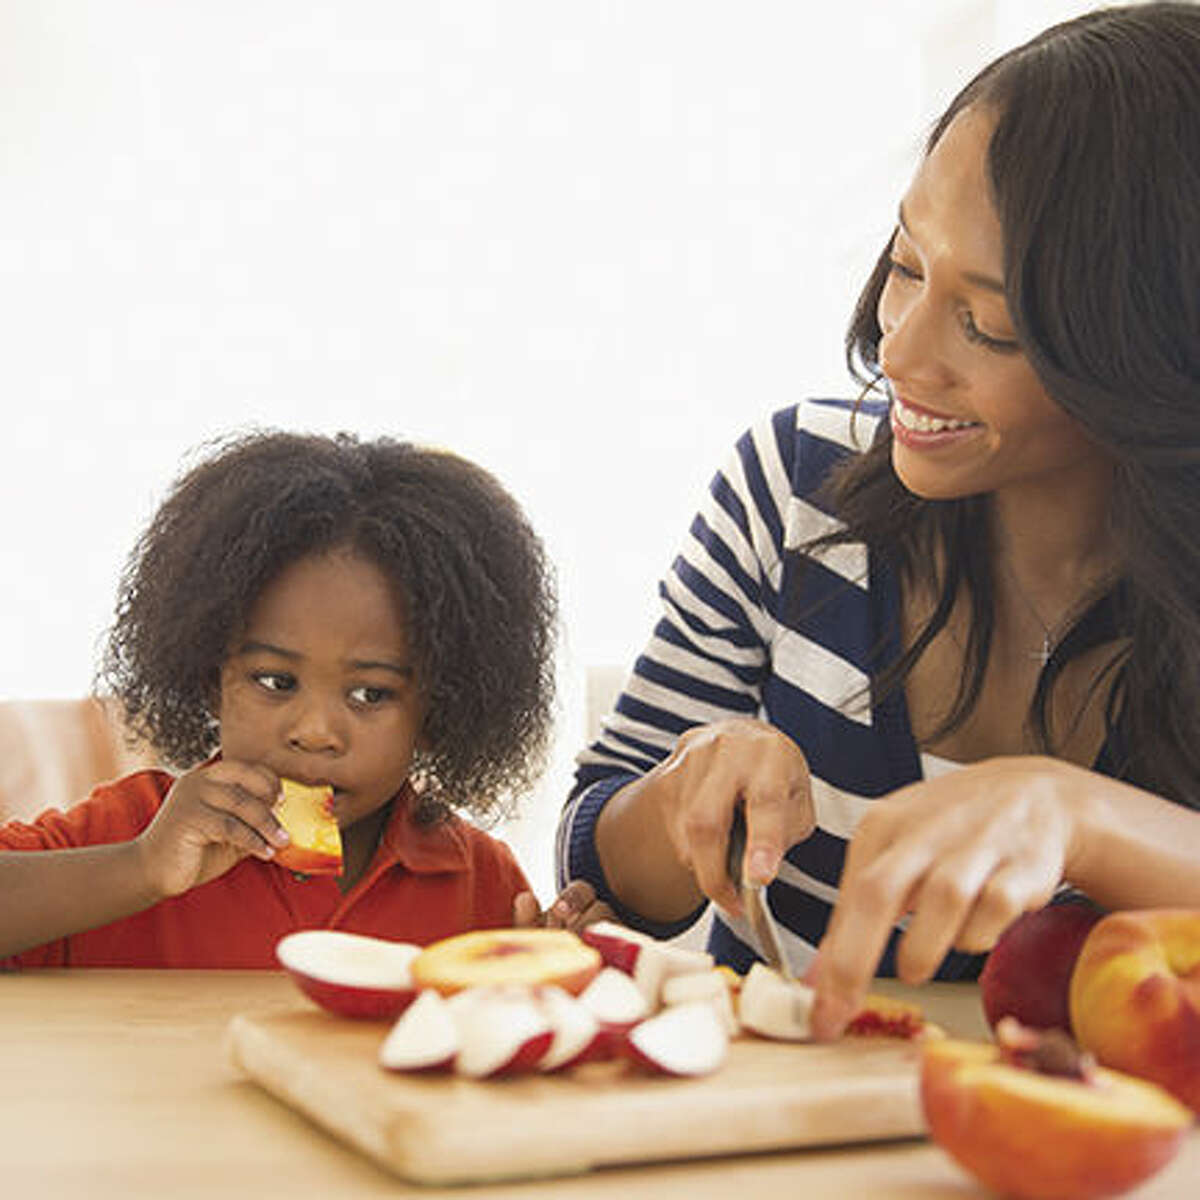 Get Smart About Snacking